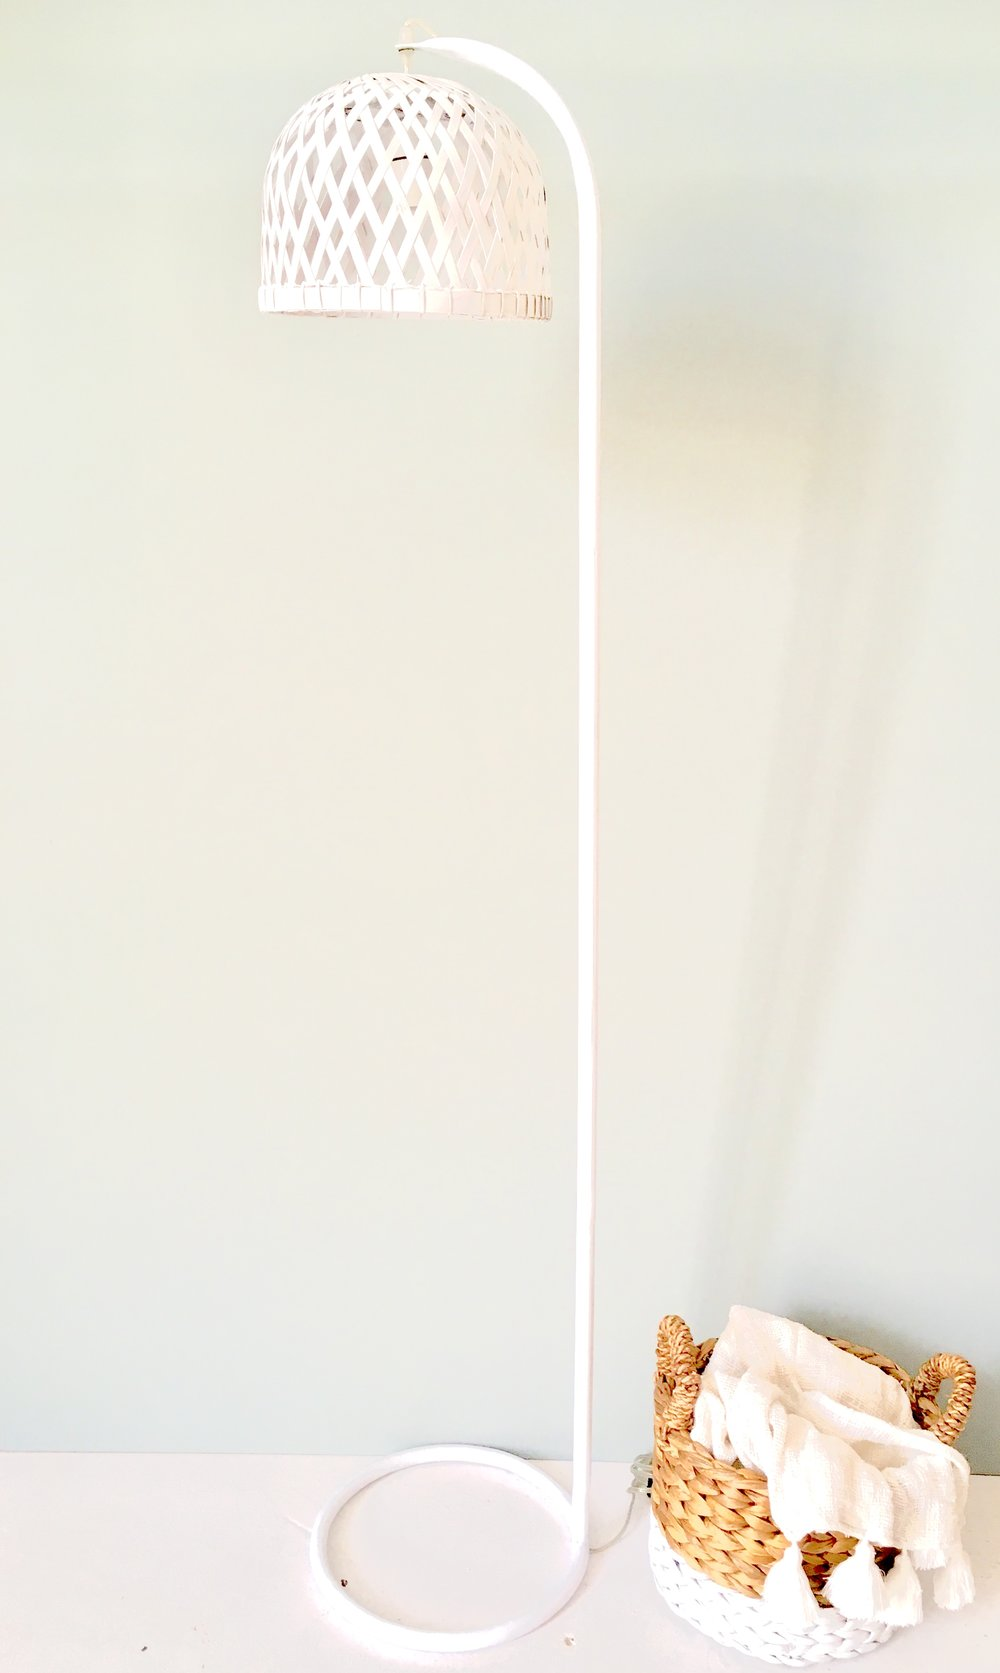 "<span style=""font-family:Helvetica;letter-spacing:2px;font-size:10px;color:rgba(28,28,28,0.8);text-transform:uppercase;""><b>ROOSTER FLOOR LAMP [WHITE]</b></span>"